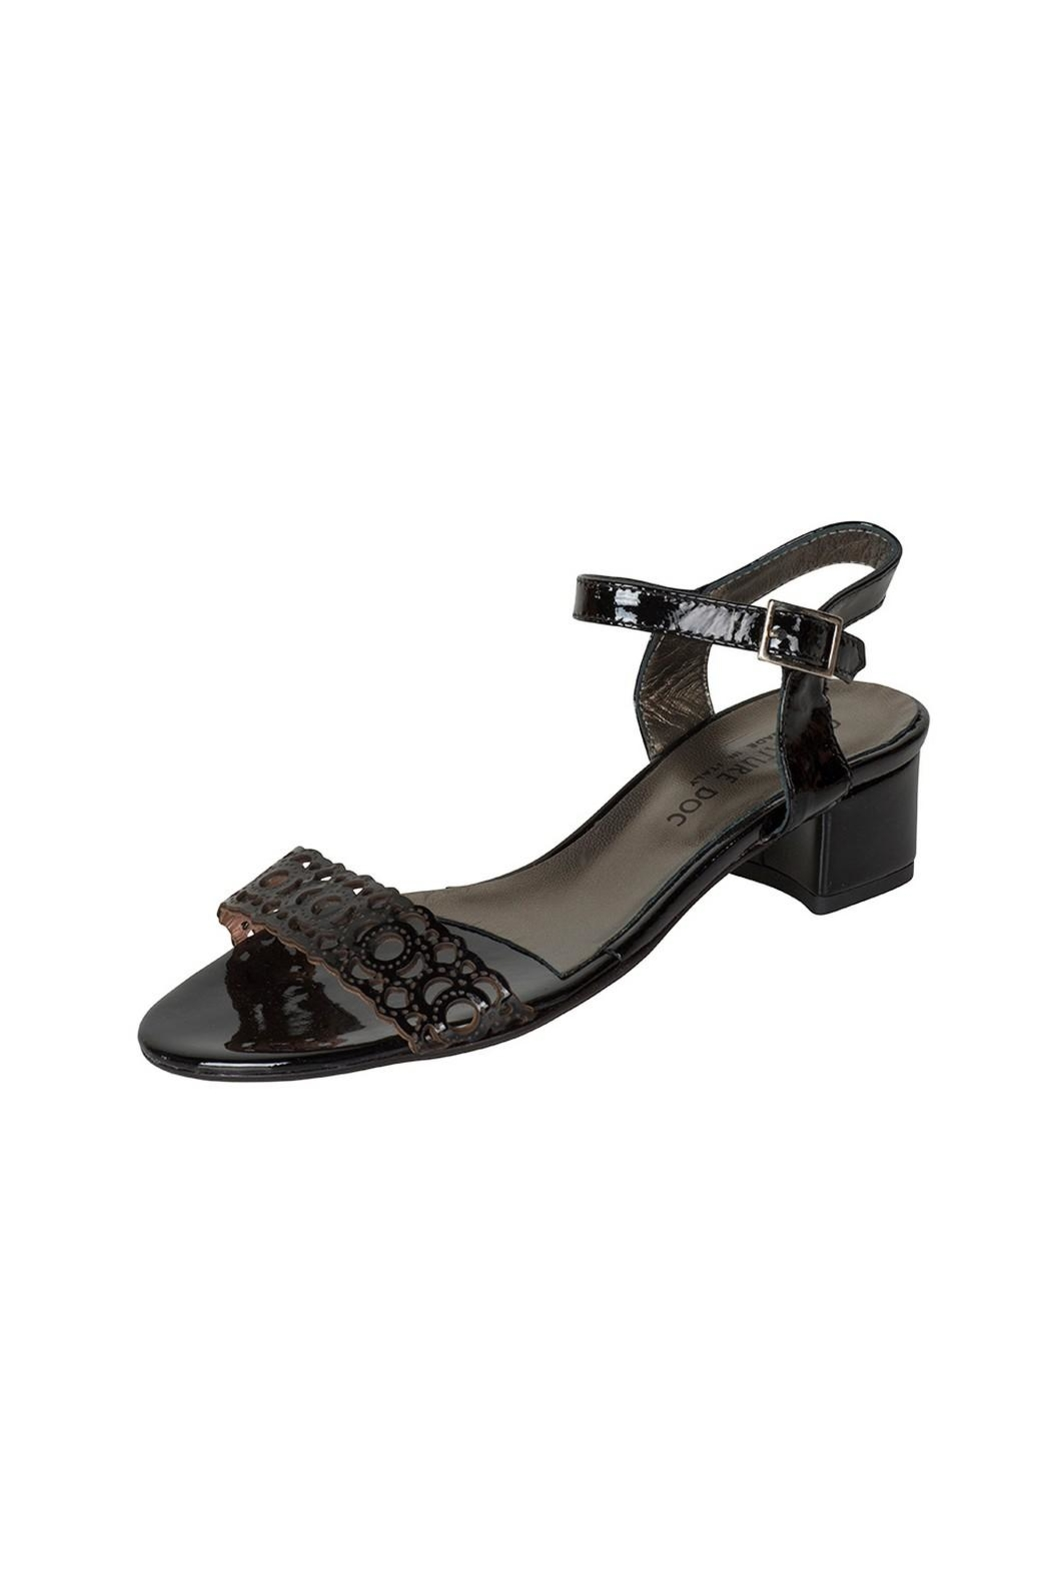 192aadfd391 Lady Doc Patent-Black Block-Heel Sandals from South Australia by ...